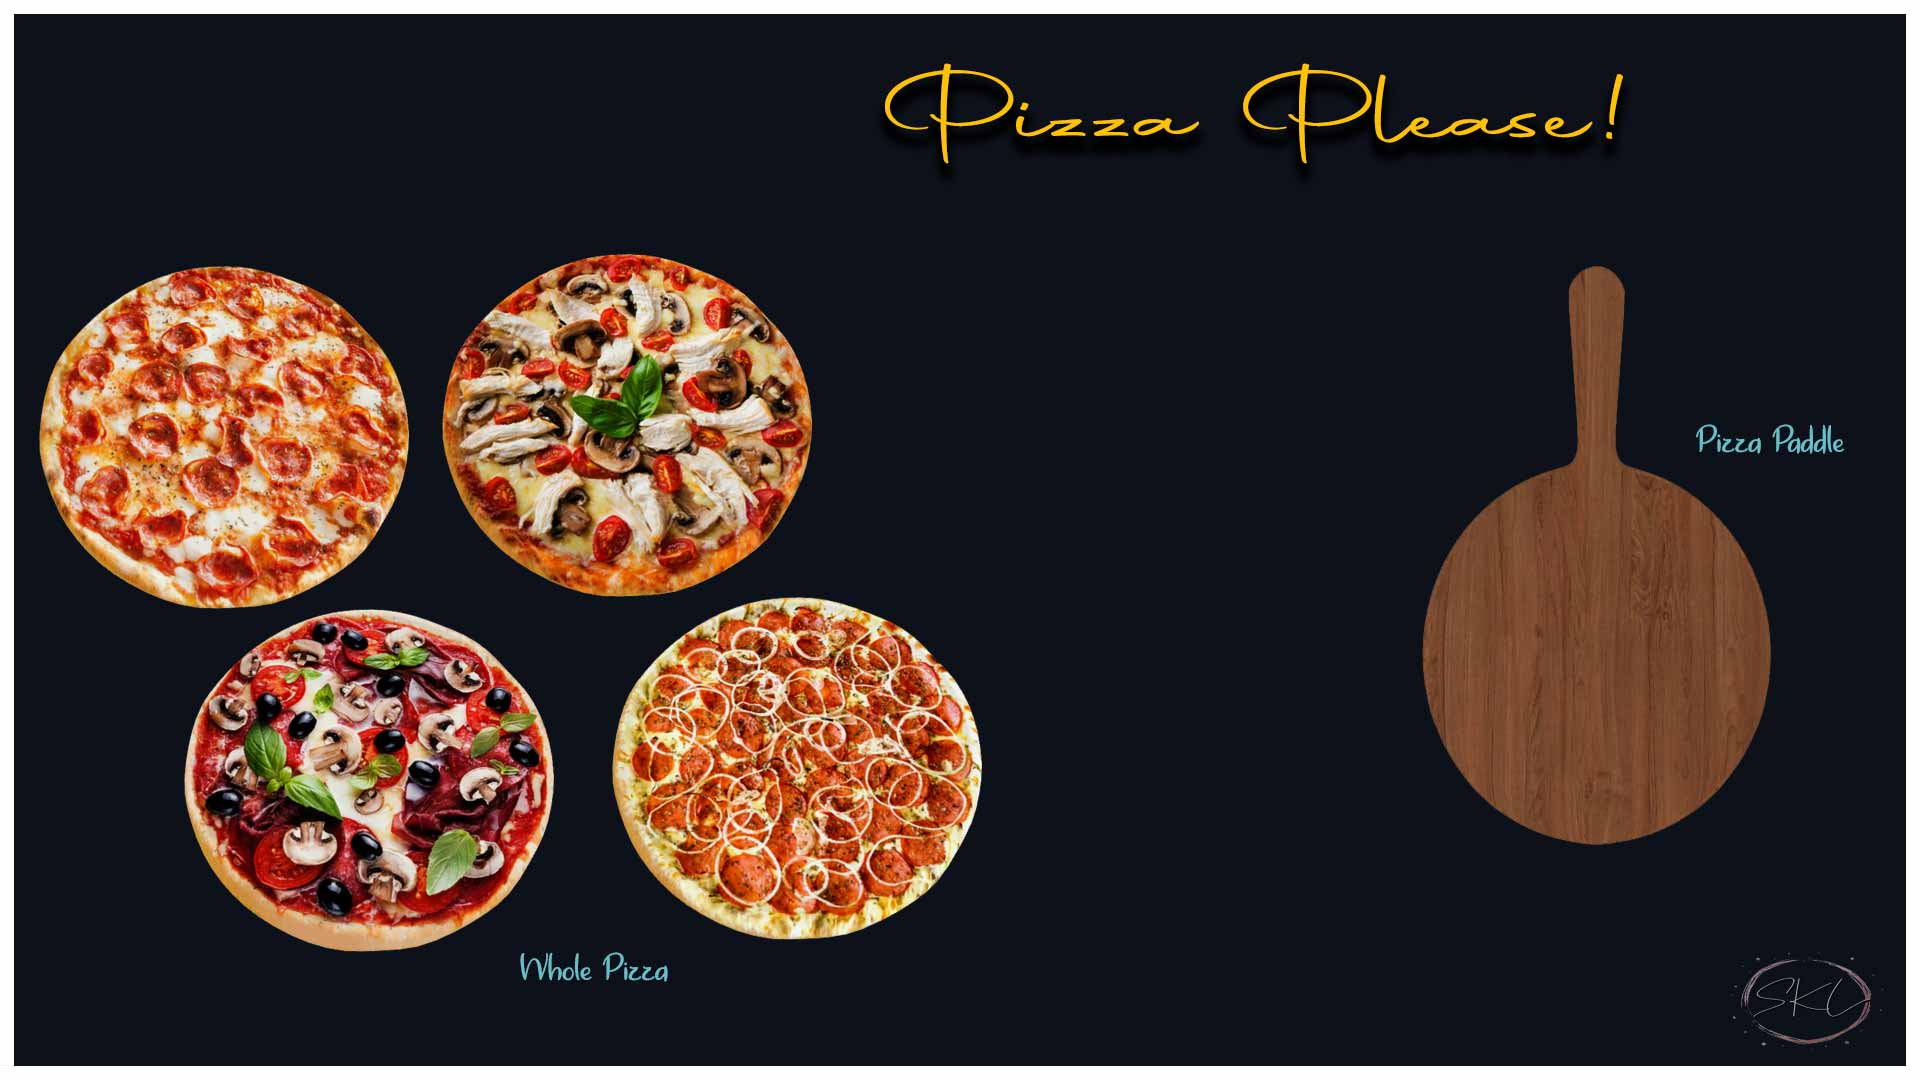 Pizza Please, high quality sims 4 cc, sunkissedlilacs, free sims 4 furniture, sims 4 custom content,